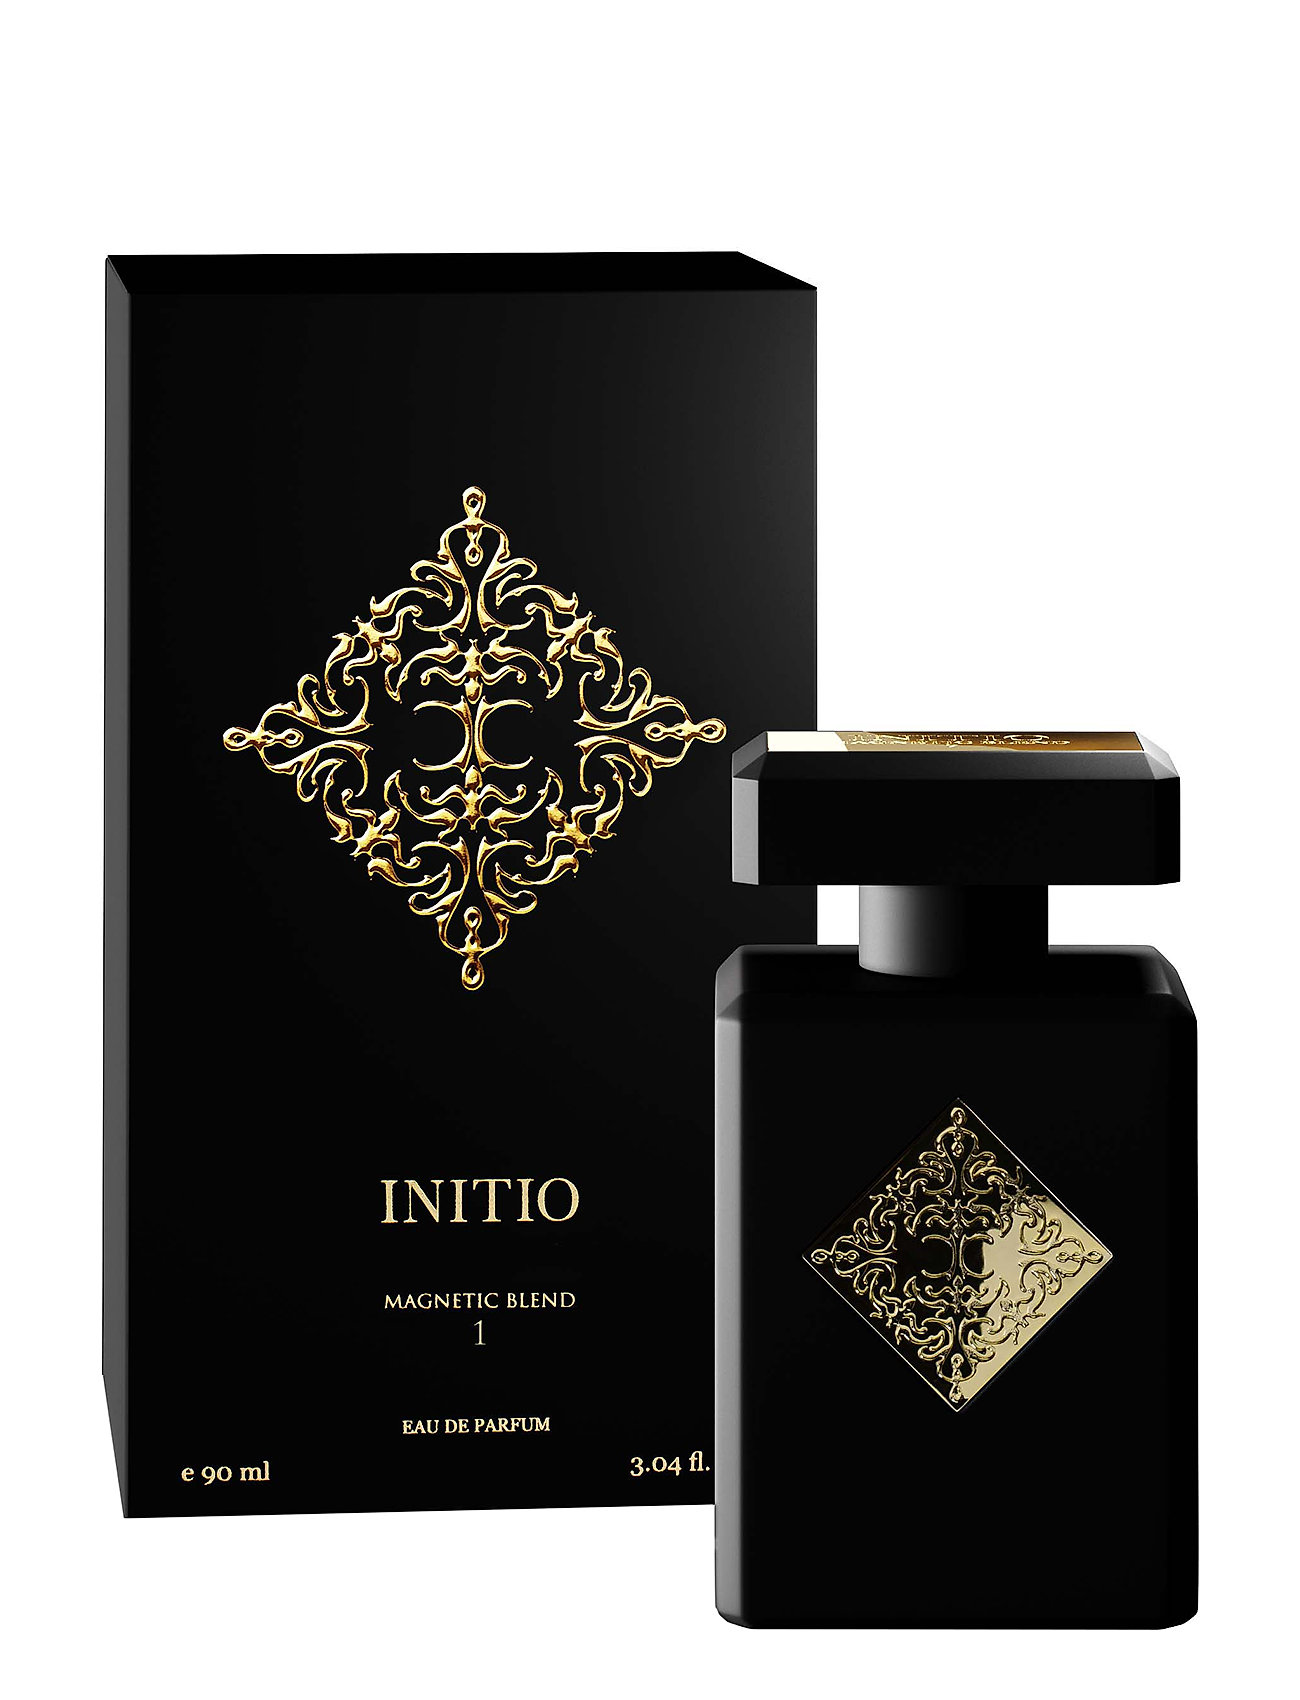 INITIO MAGNETIC BLEND 7 EDP SPRAY - CLEAR